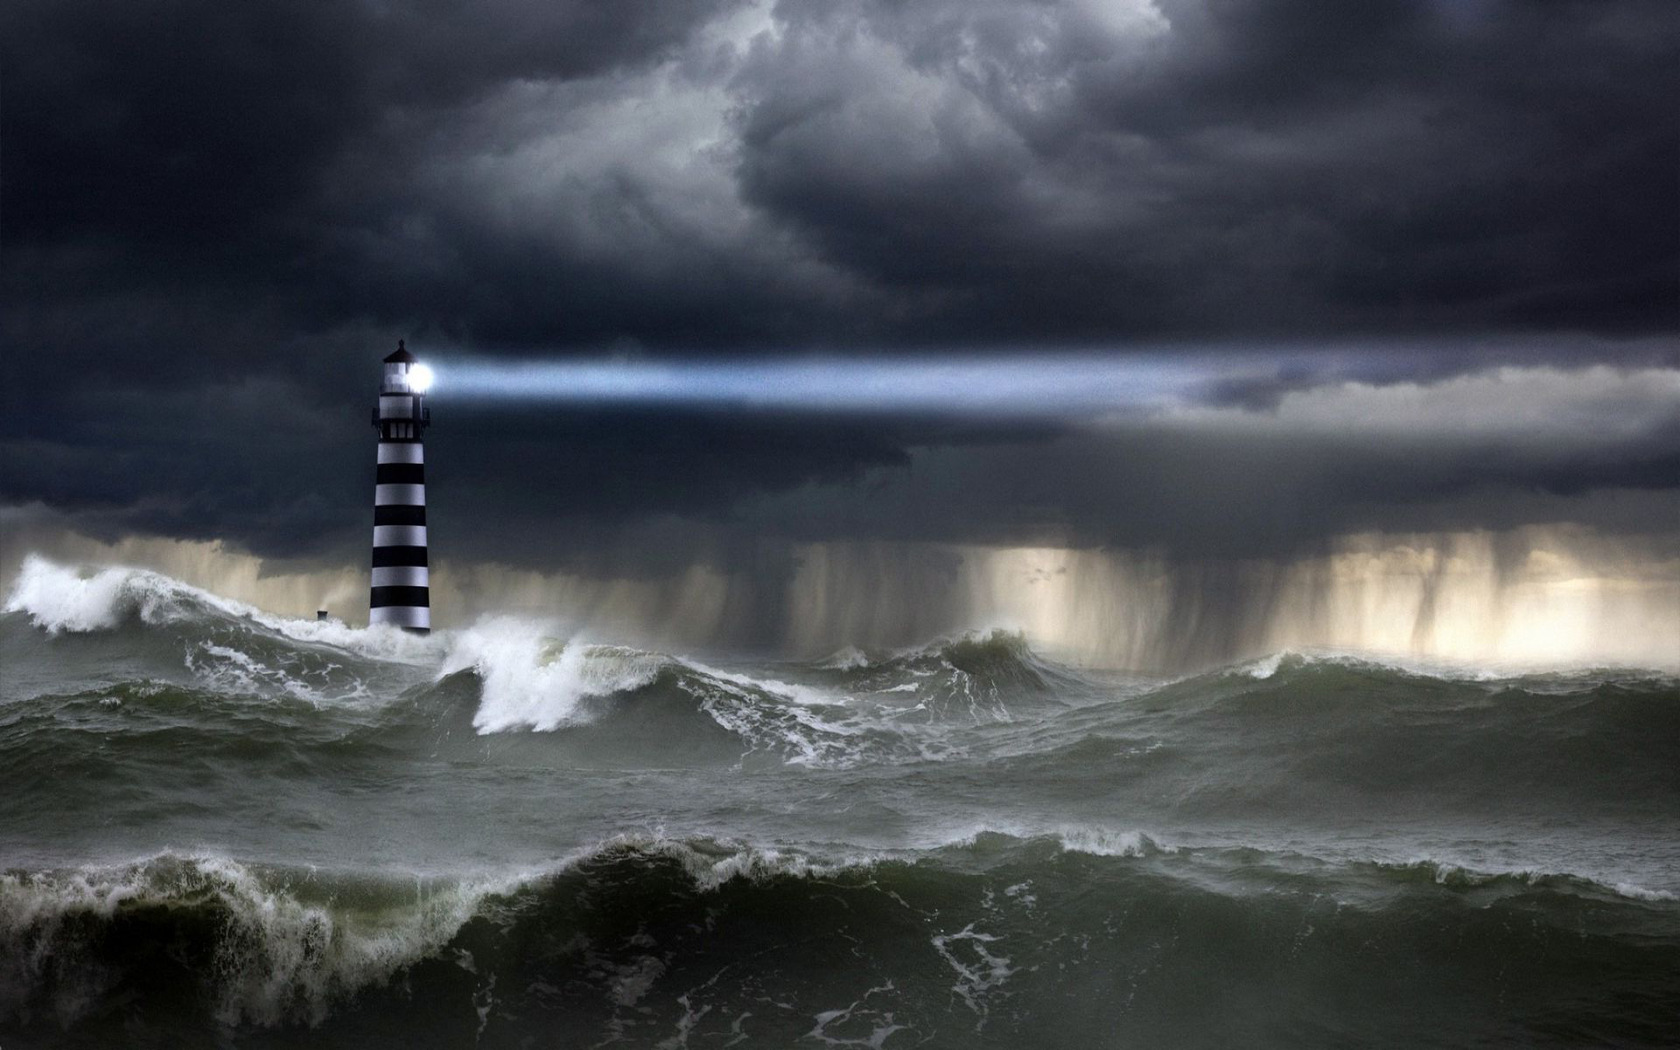 Download Lighthouse in the storm wallpaper 1680x1050